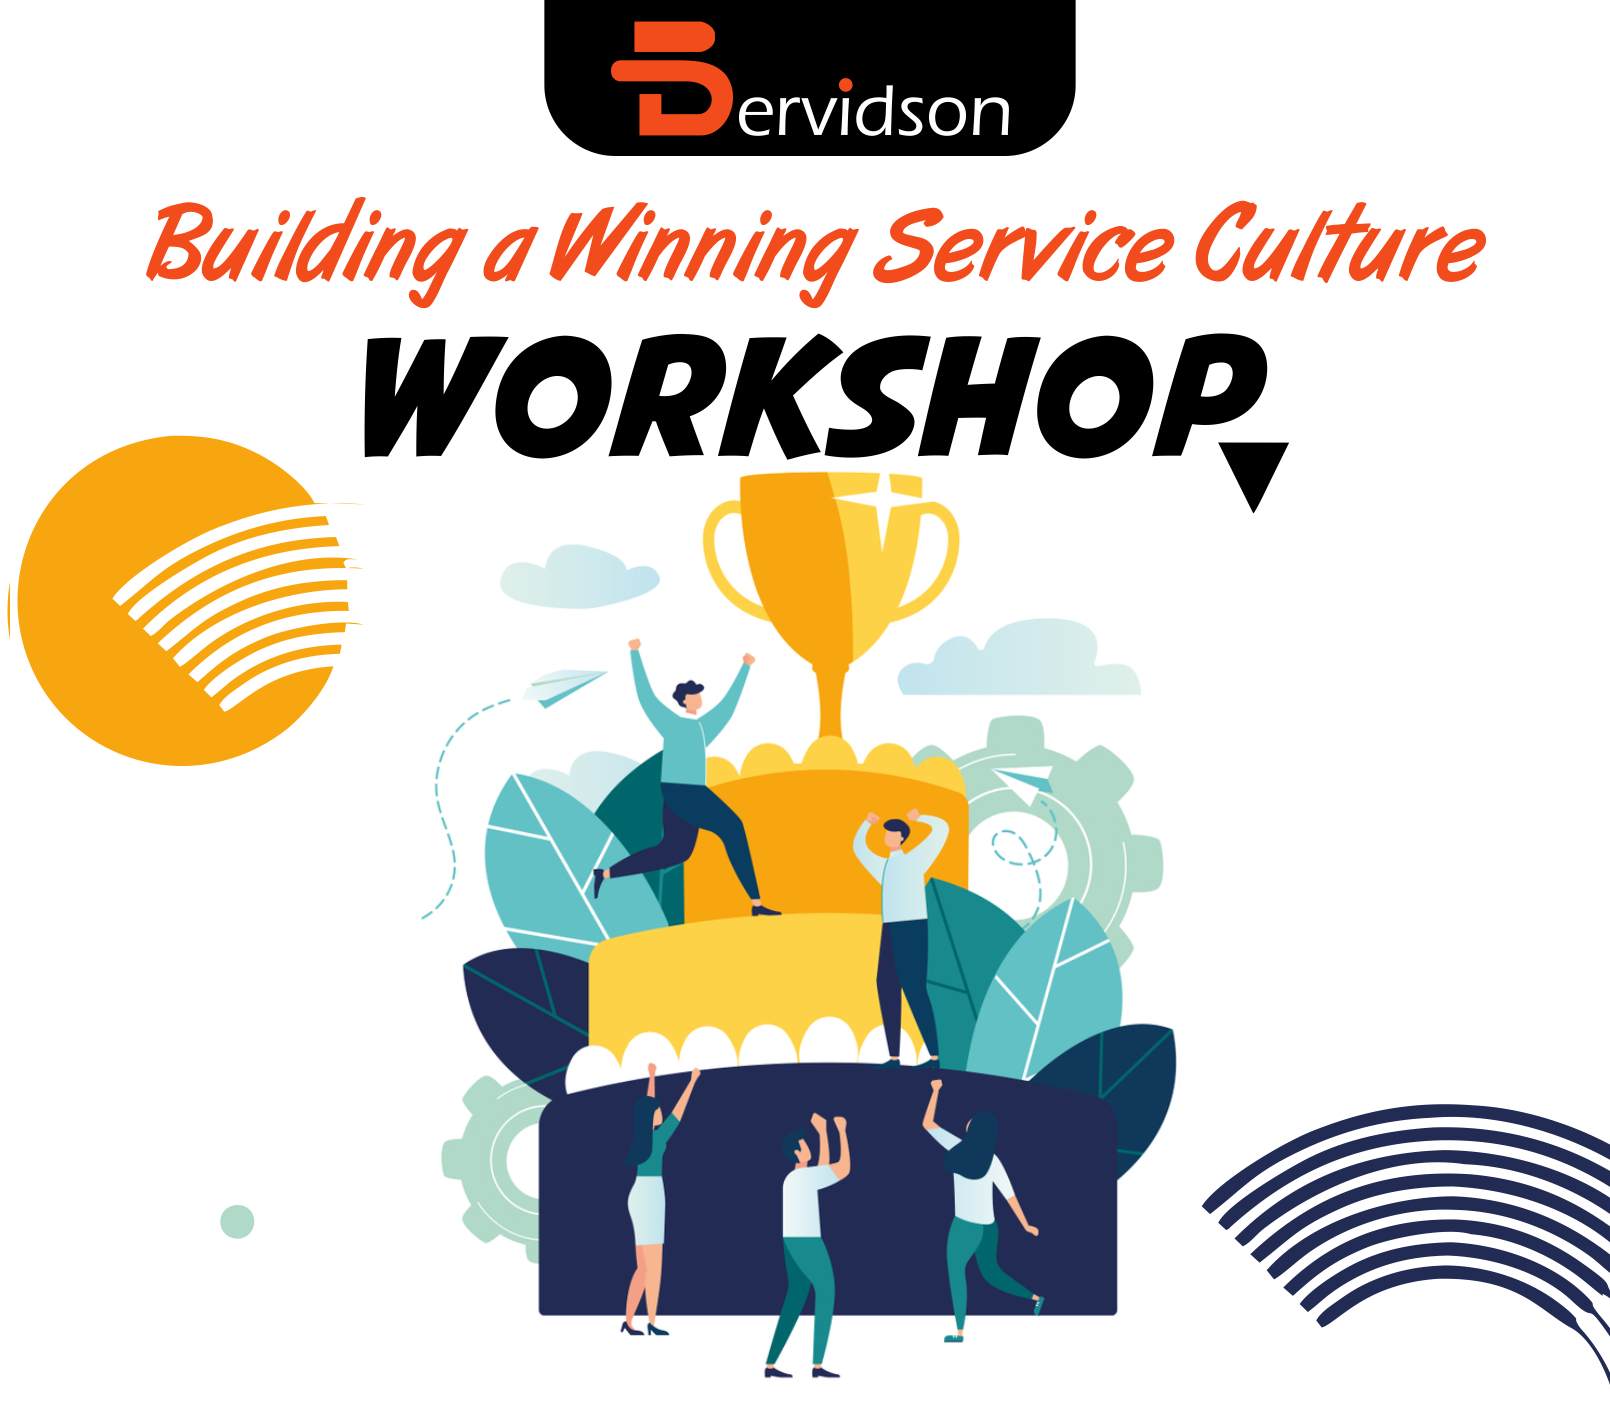 Building a Winning Service Culture Workshop